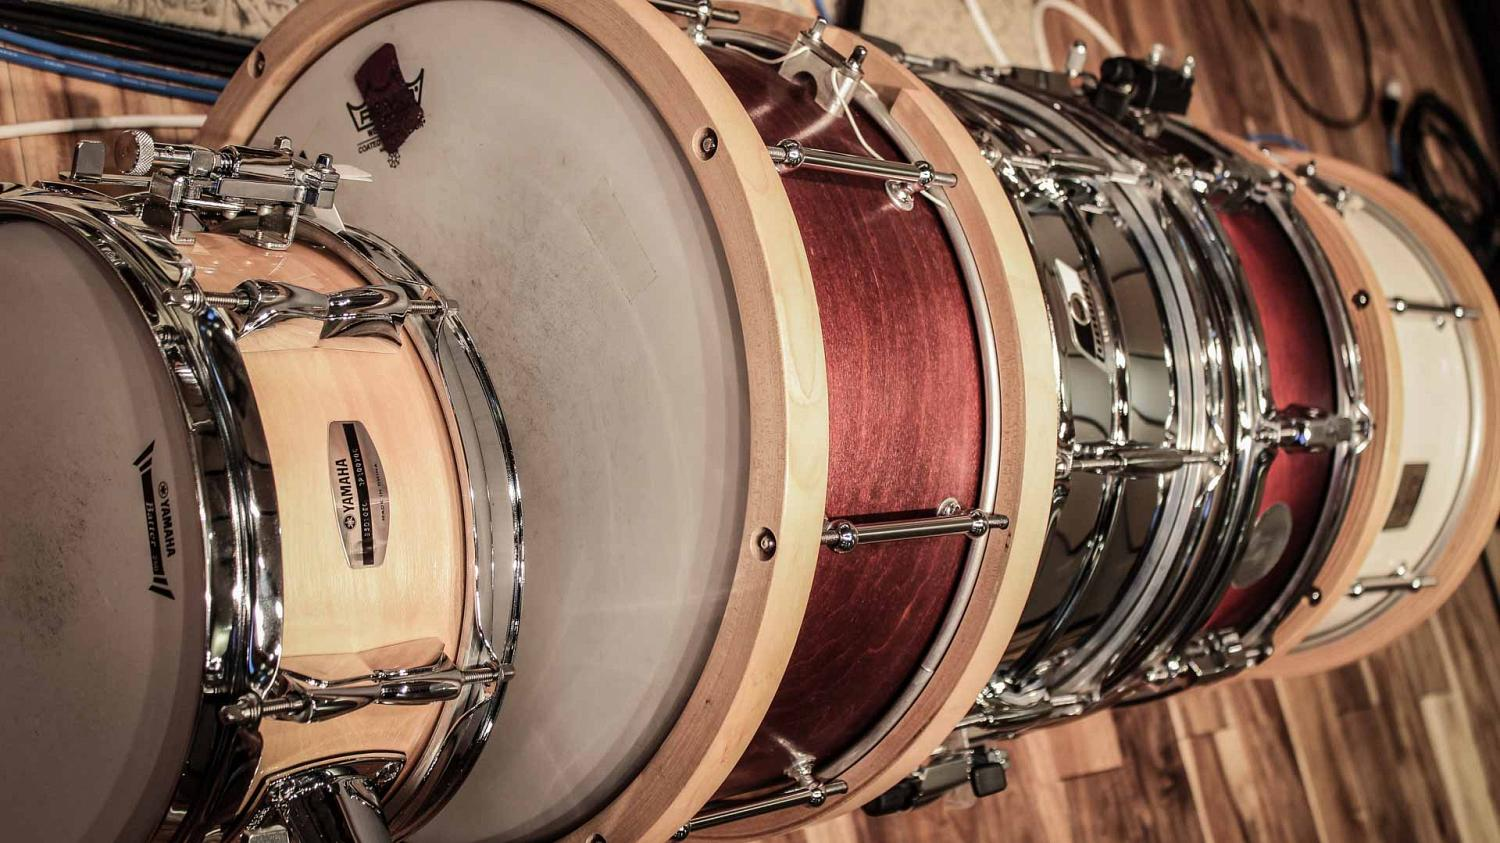 A variety of snare drums, both wooden and metal, available for online drum tracks to suit a variety of music genres and styles